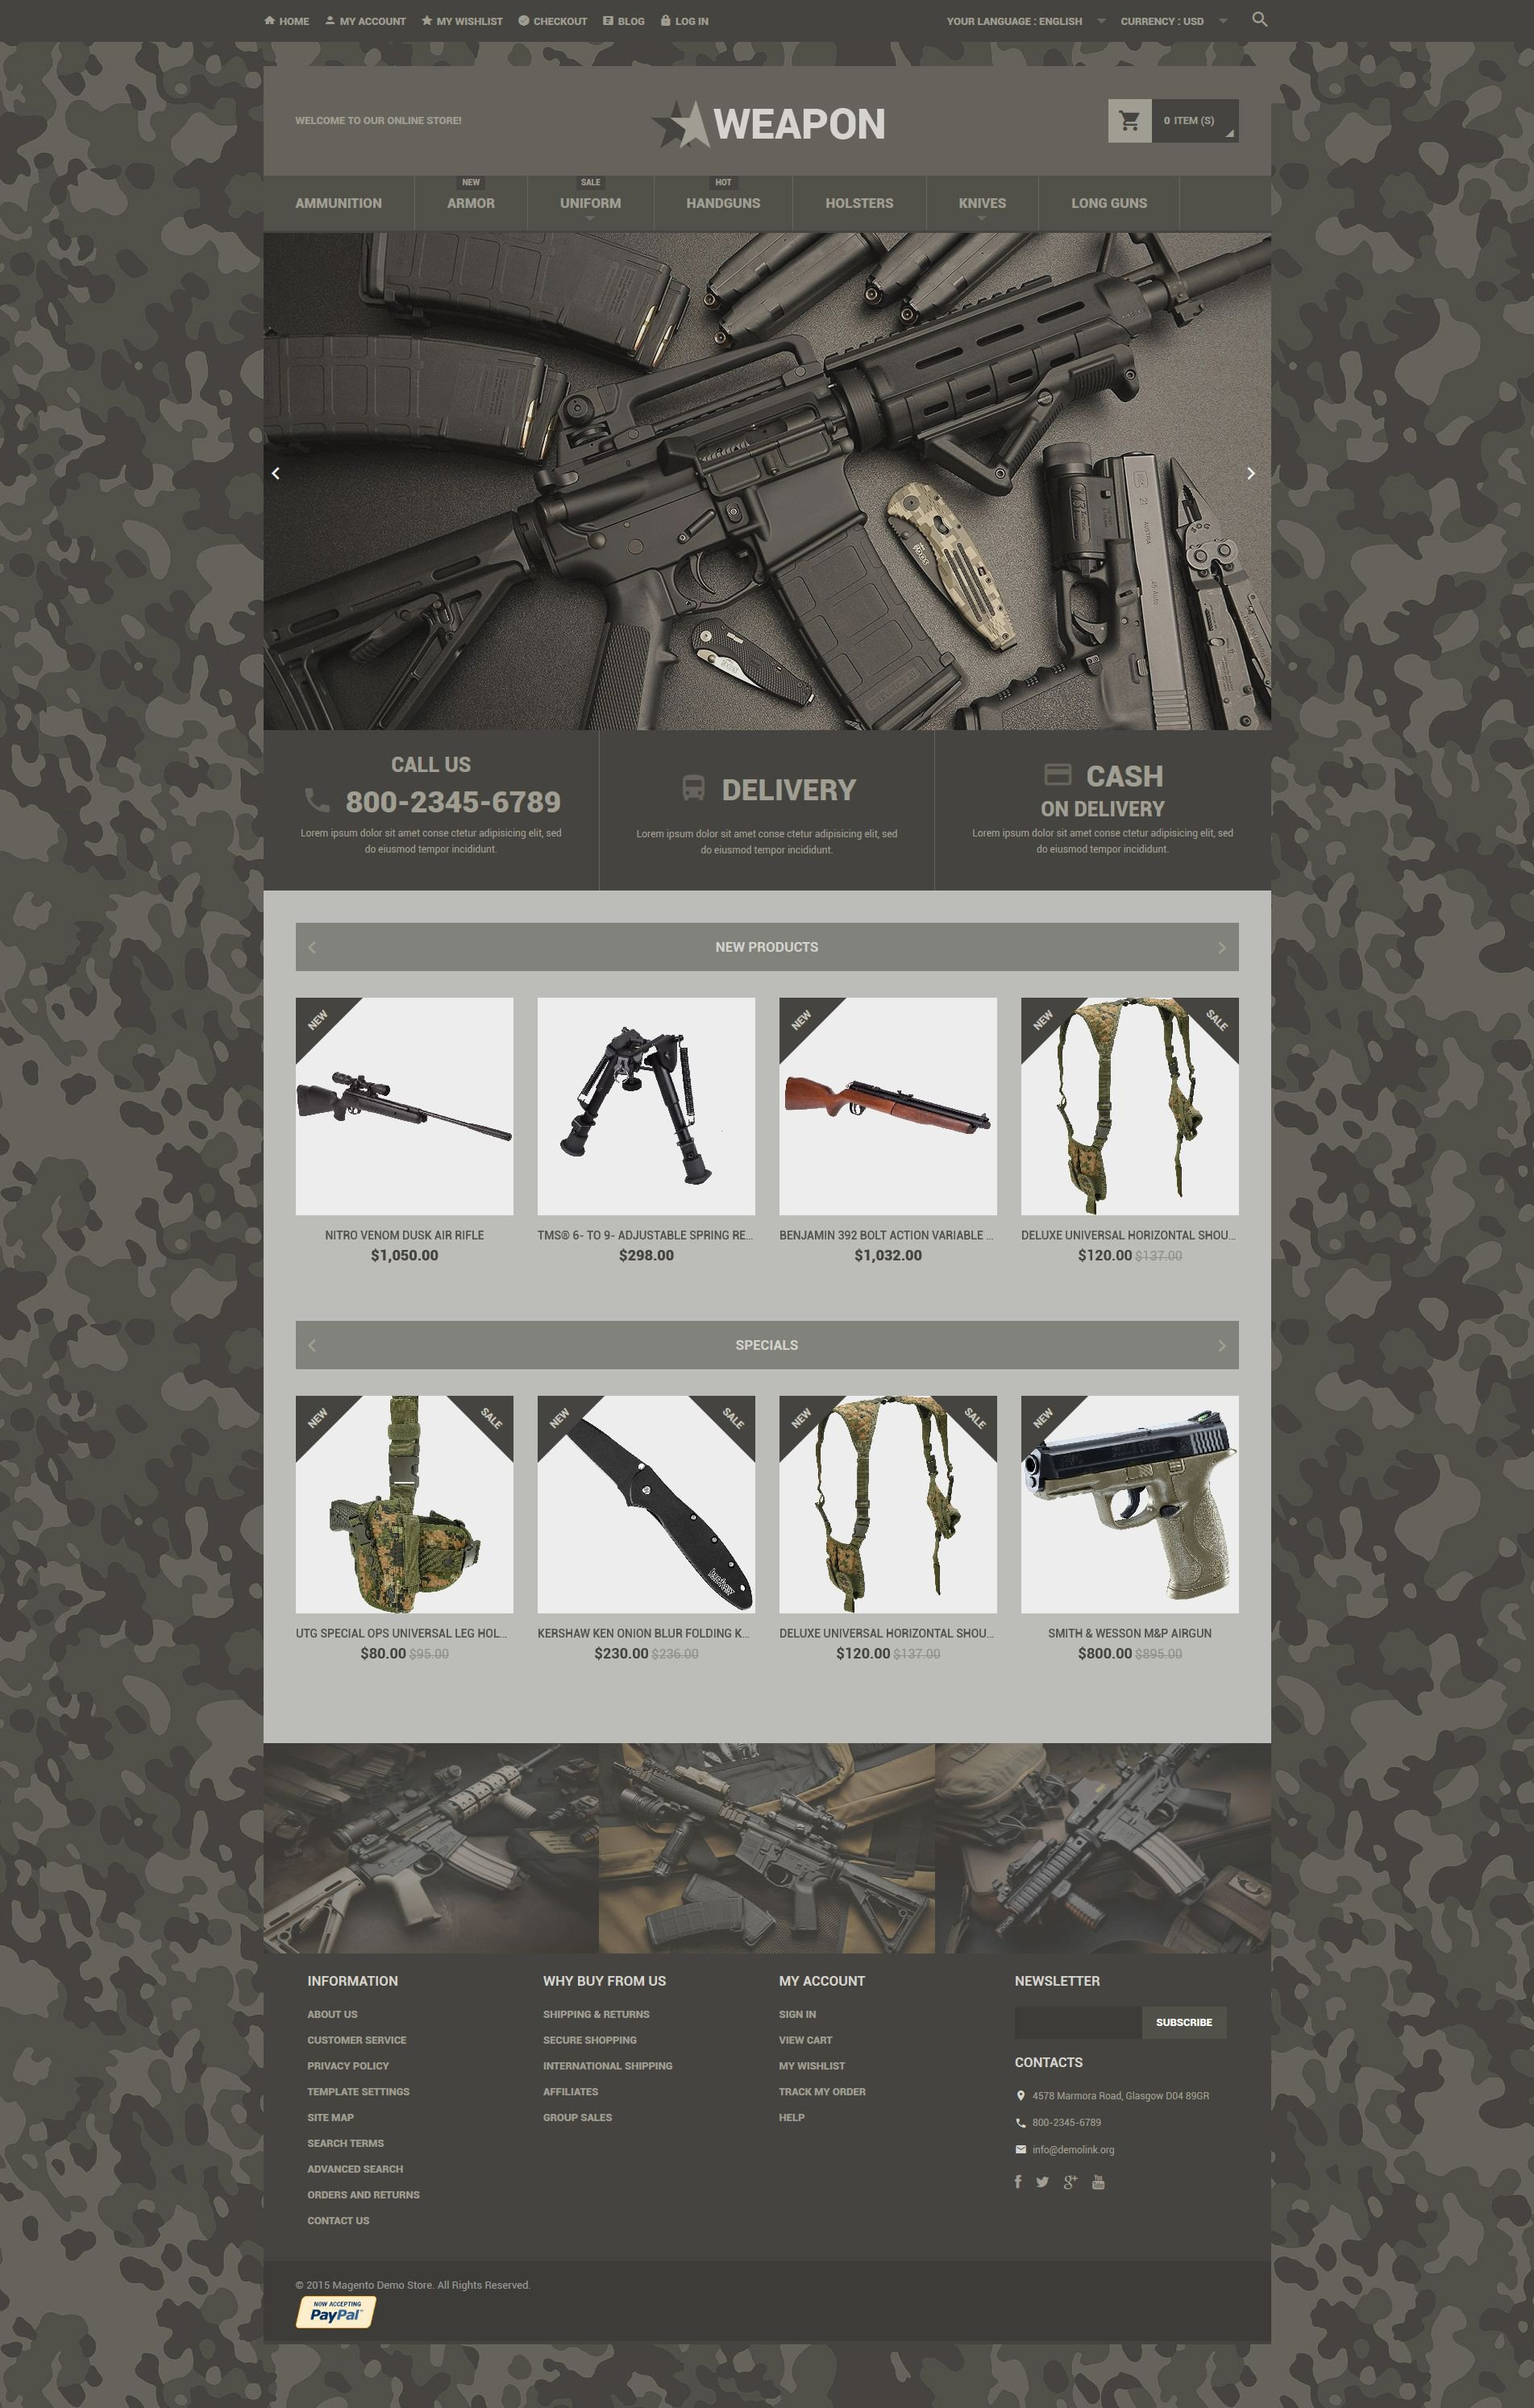 The Weapon Store Magento Design 53961, one of the best Magento themes of its kind (sport, most popular), also known as weapon store Magento template, shop Magento template, online products Magento template, shoot Magento template, gun Magento template, Walter TT Taser Savage Colt Glock Ruger Smith & Wesson Remington Winchester Browning Marlin Military Firearms organization Magento template, gun Magento template, part Magento template, firearm Magento template, ammunition Magento template, accessories Magento template, grip Magento template, clip Magento template, bolt Magento template, ejector Magento template, extractor Magento template, trigger and related with weapon store, shop, online products, shoot, gun, Walter TT Taser Savage Colt Glock Ruger Smith & Wesson Remington Winchester Browning Marlin Military Firearms organization, gun, part, firearm, ammunition, accessories, grip, clip, bolt, ejector, extractor, trigger, etc.